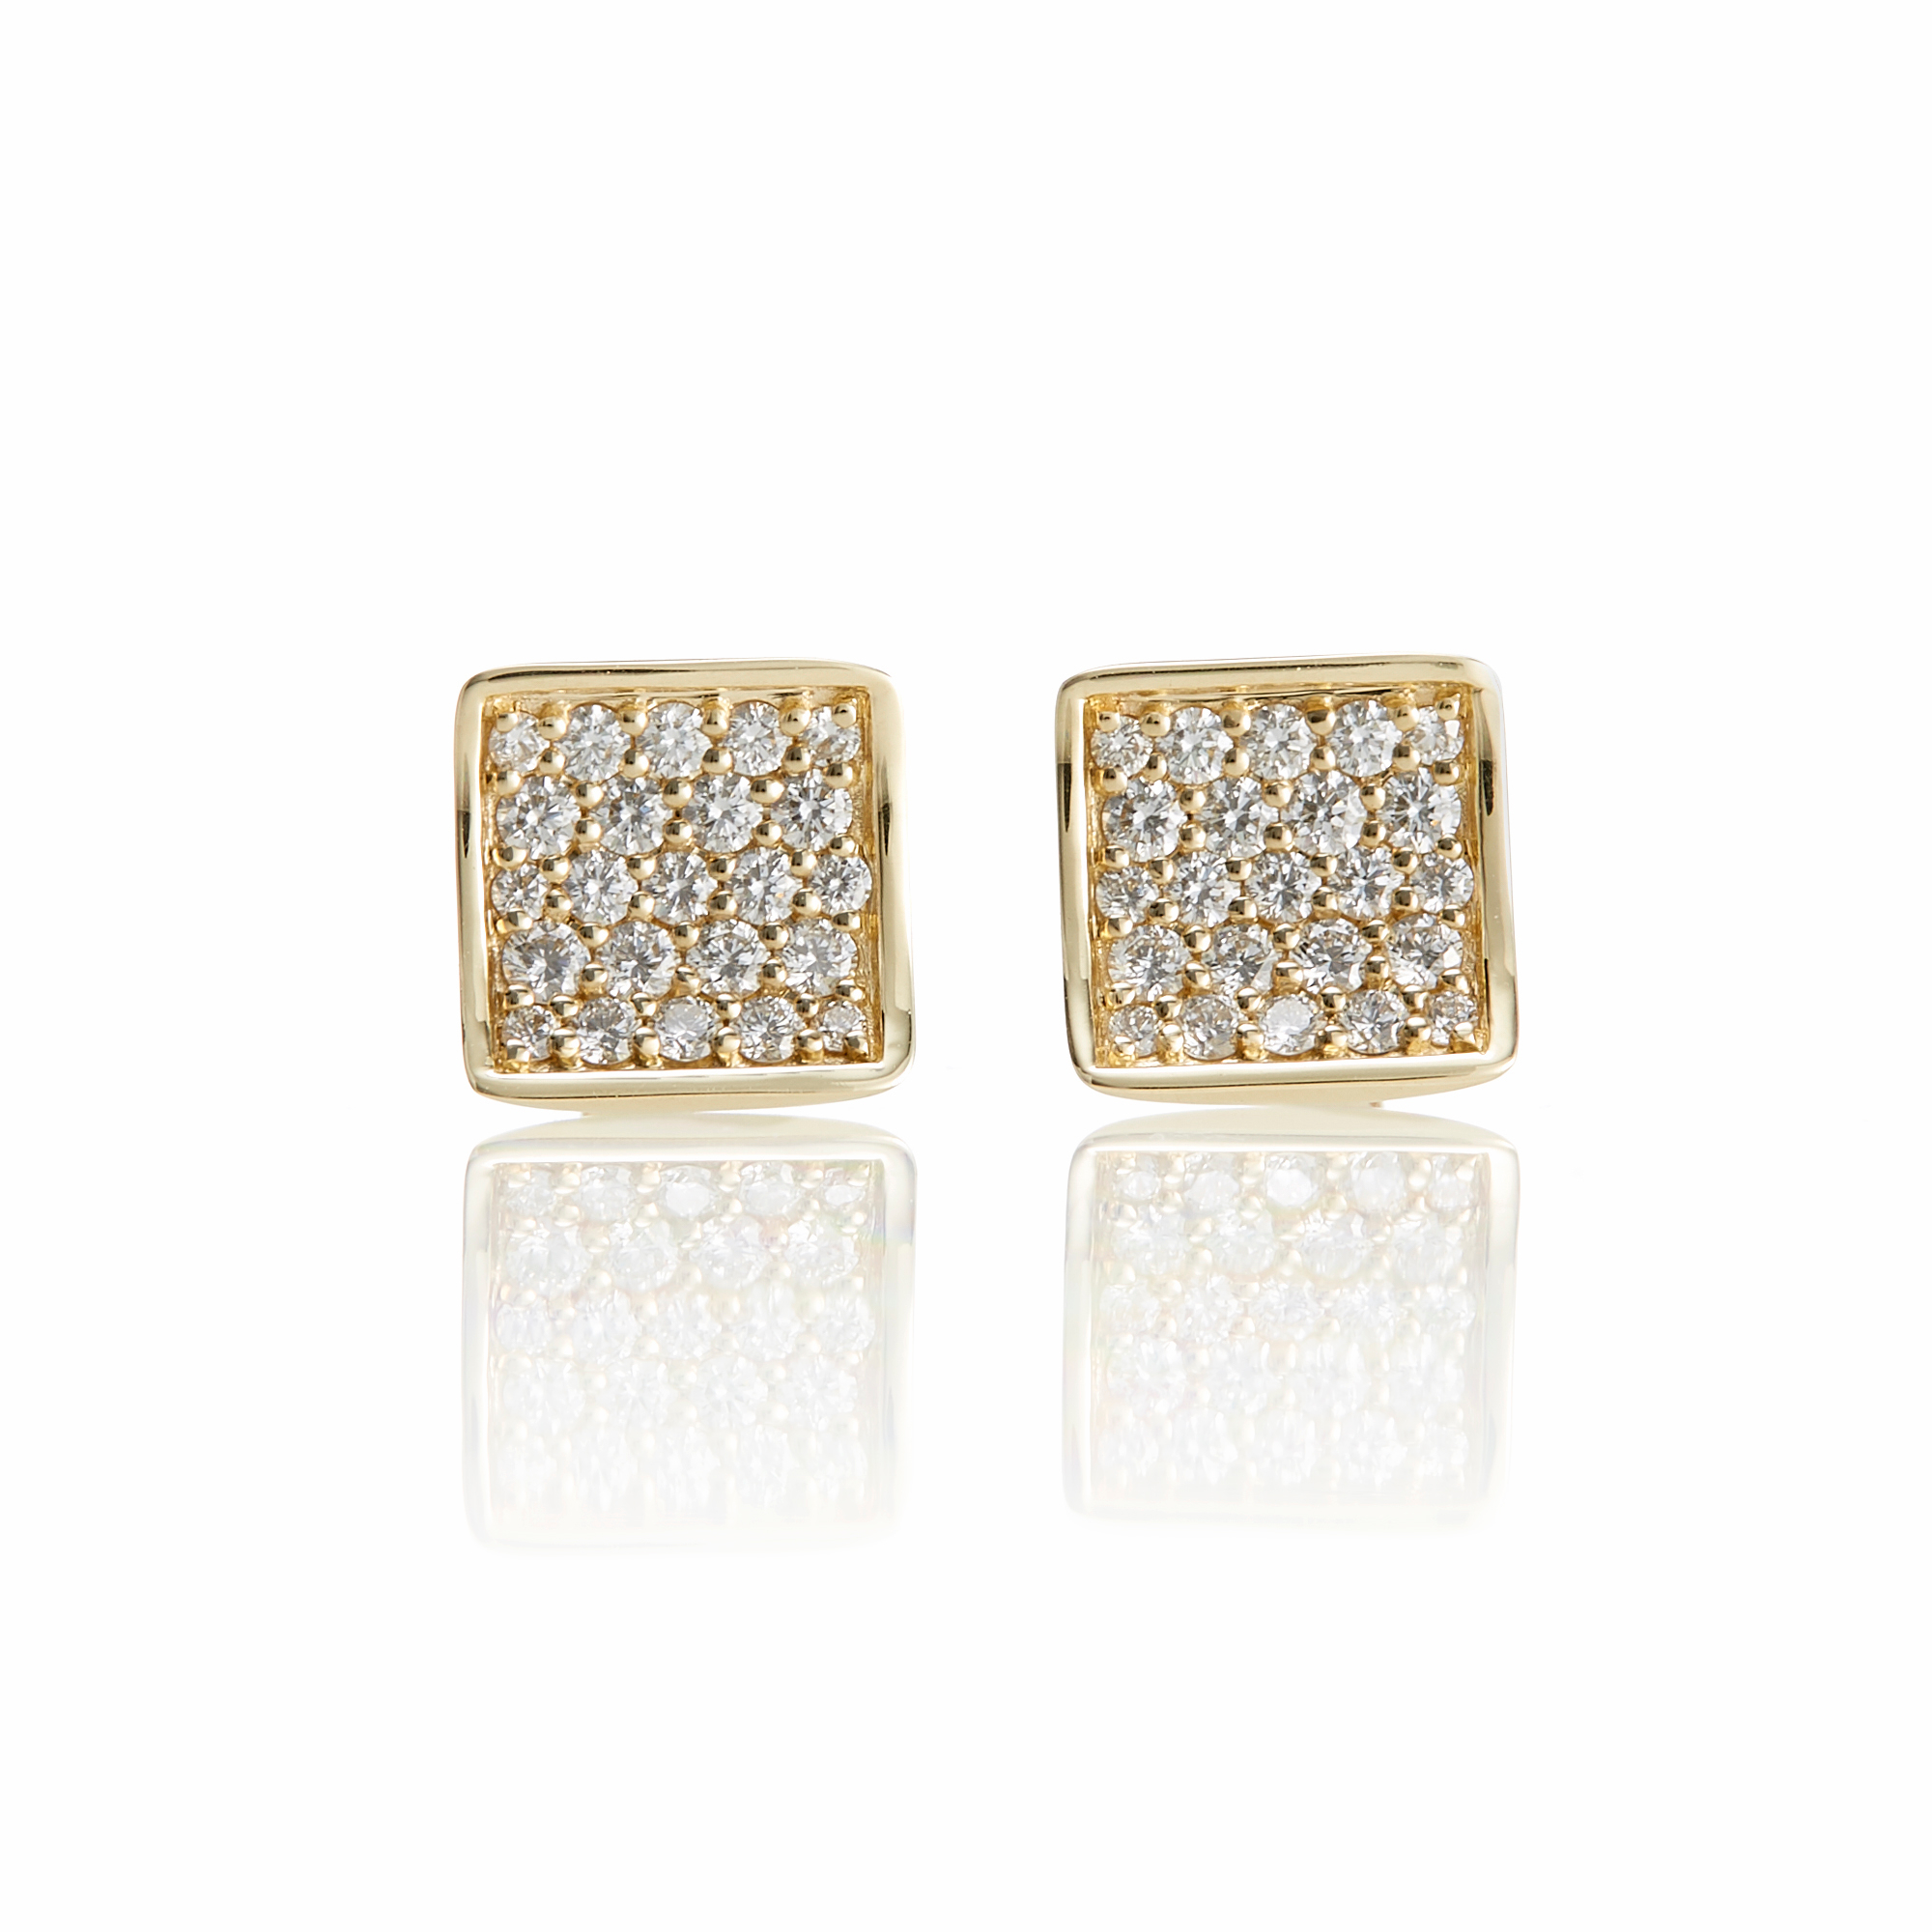 Gump's Concave Gold Diamond Square Stud Earrings